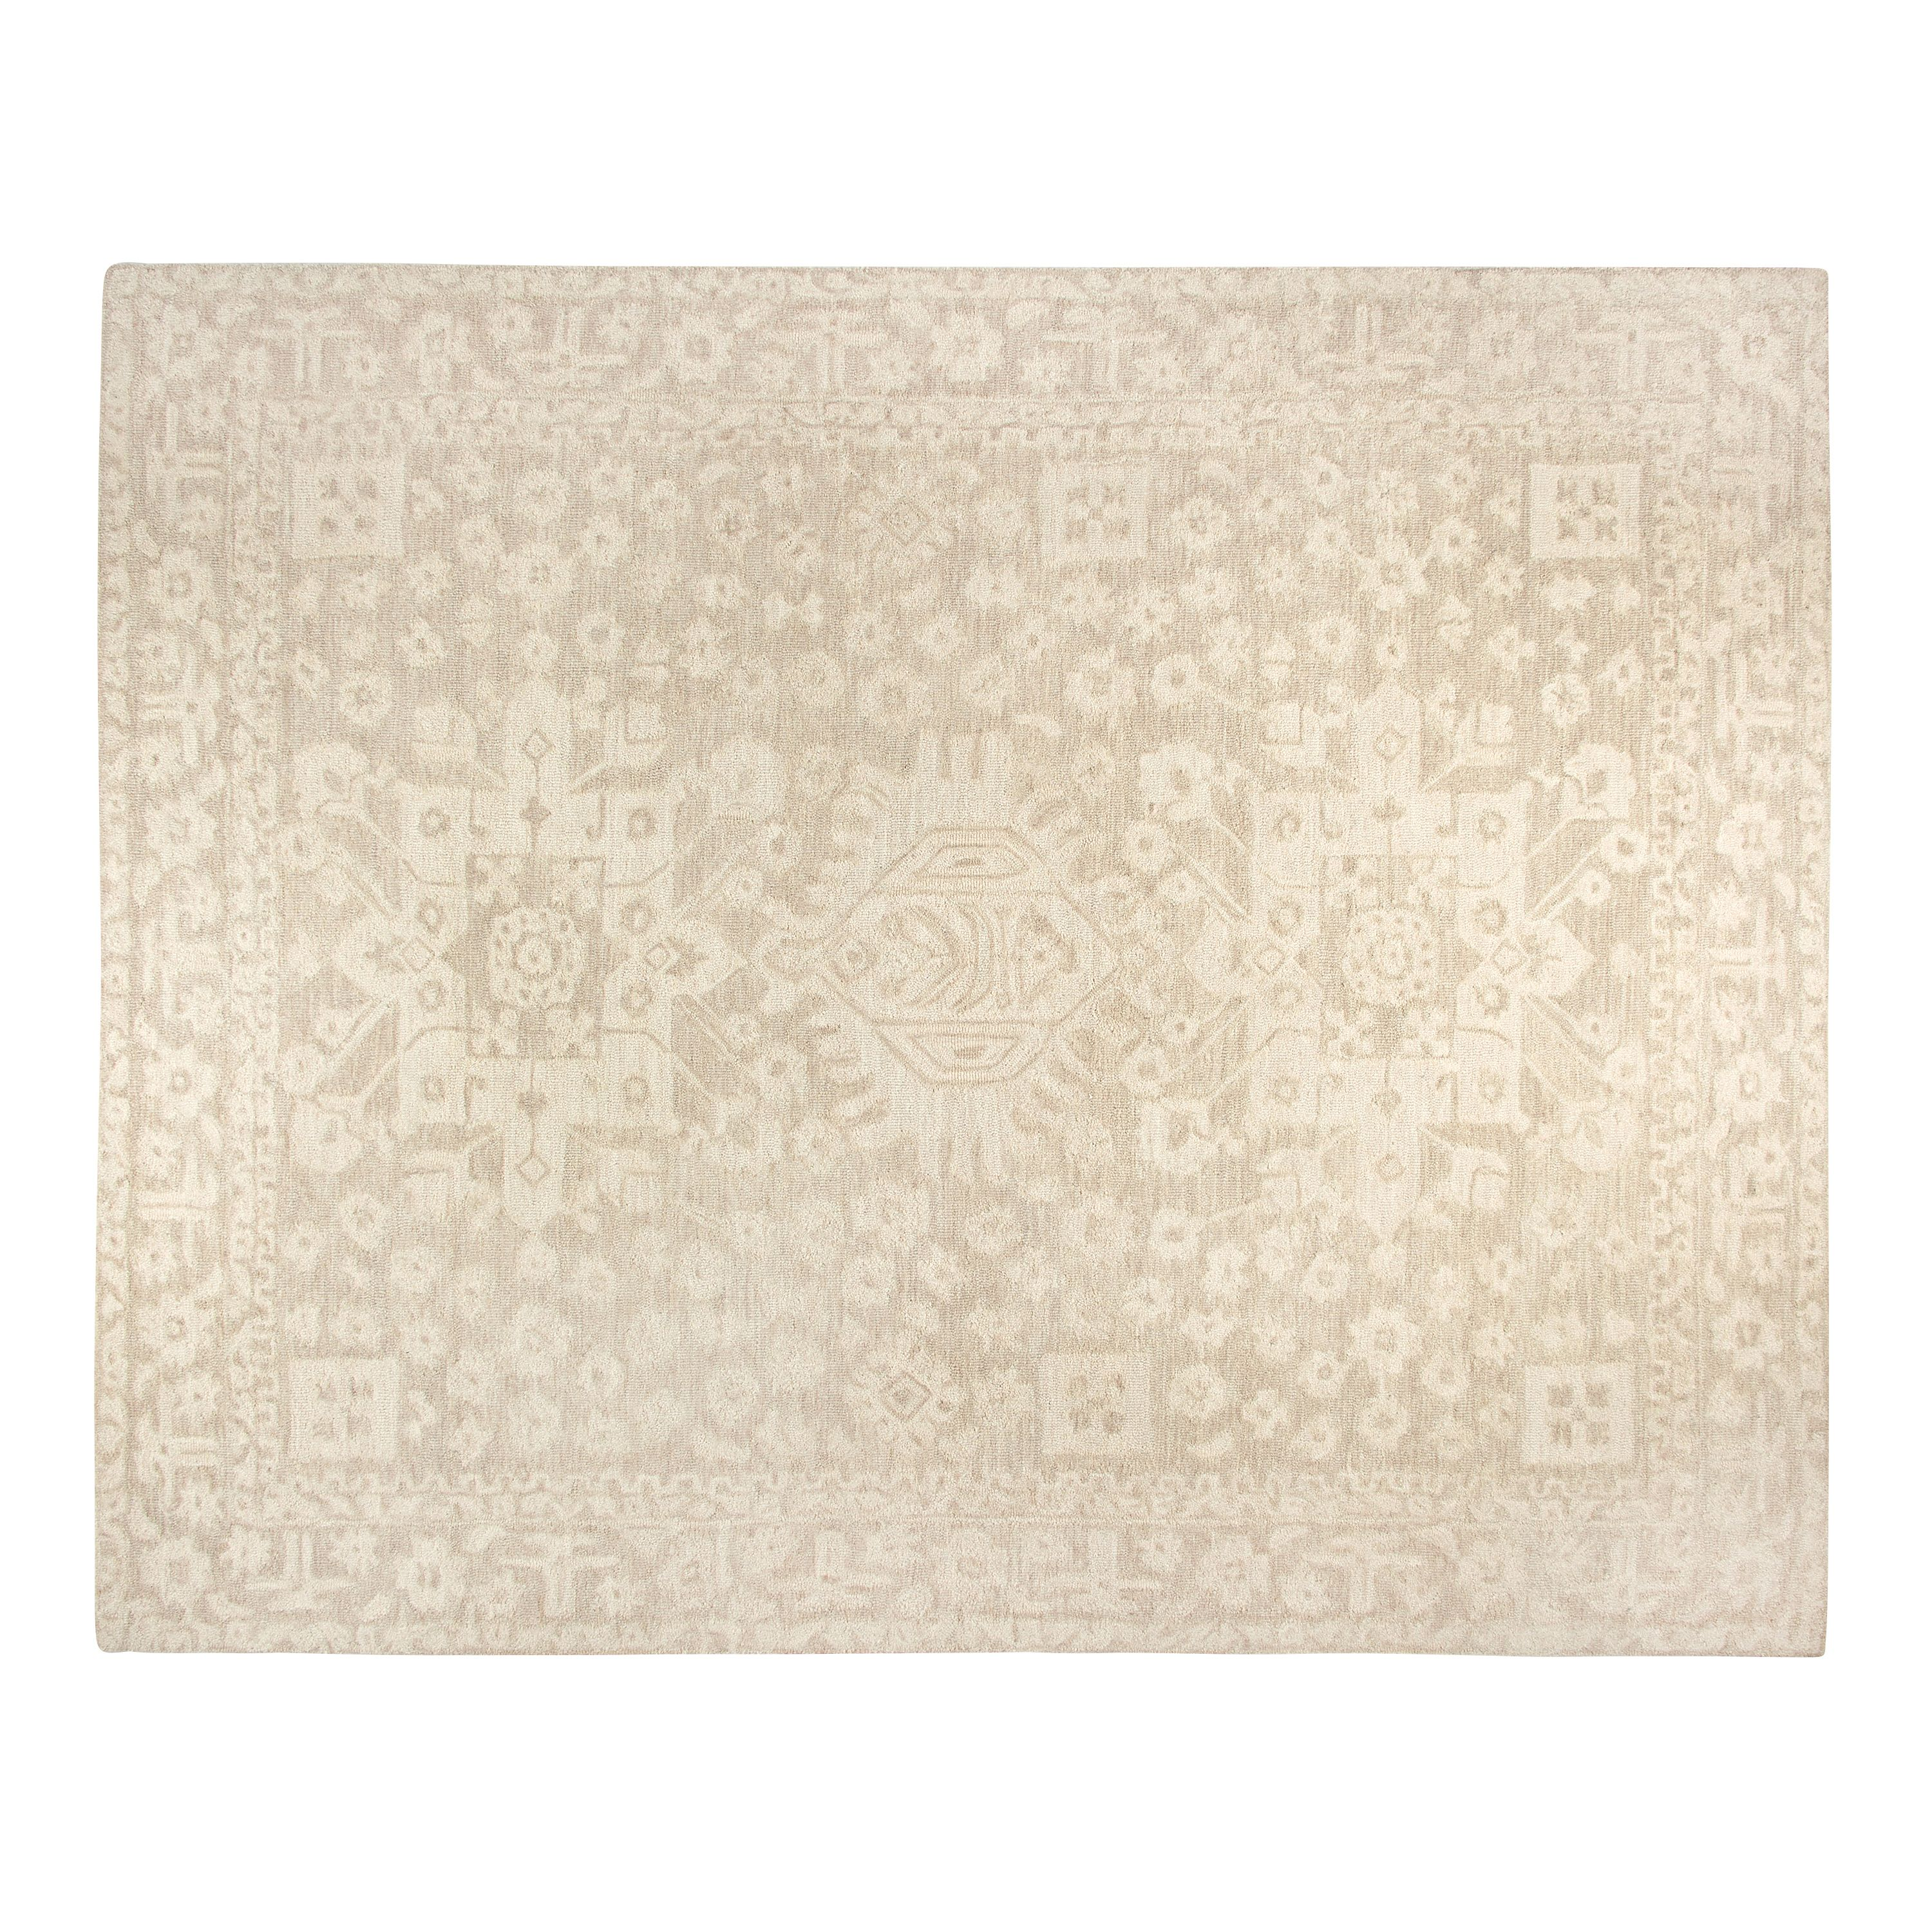 Christmas Area Rugs 8 X 10.One Of My Favorite Discoveries At Christmastreeshops Com 8